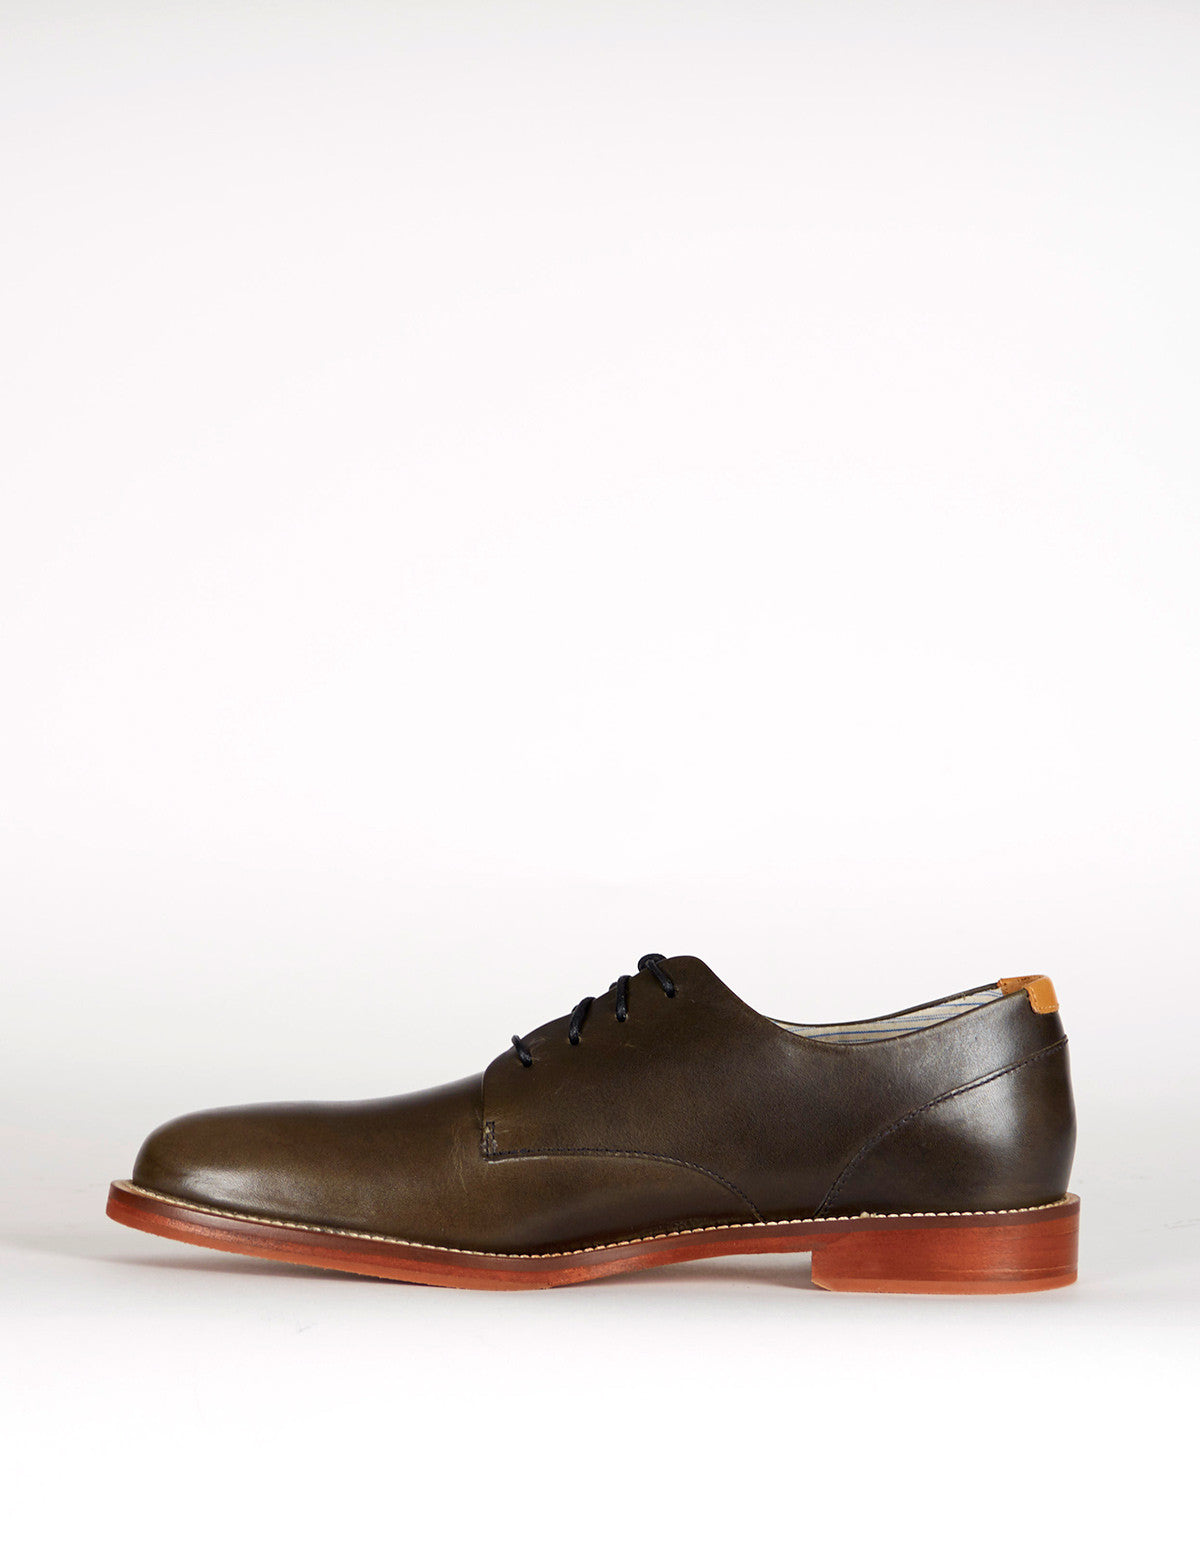 J Shoes William Derby Black - Still Life - 2